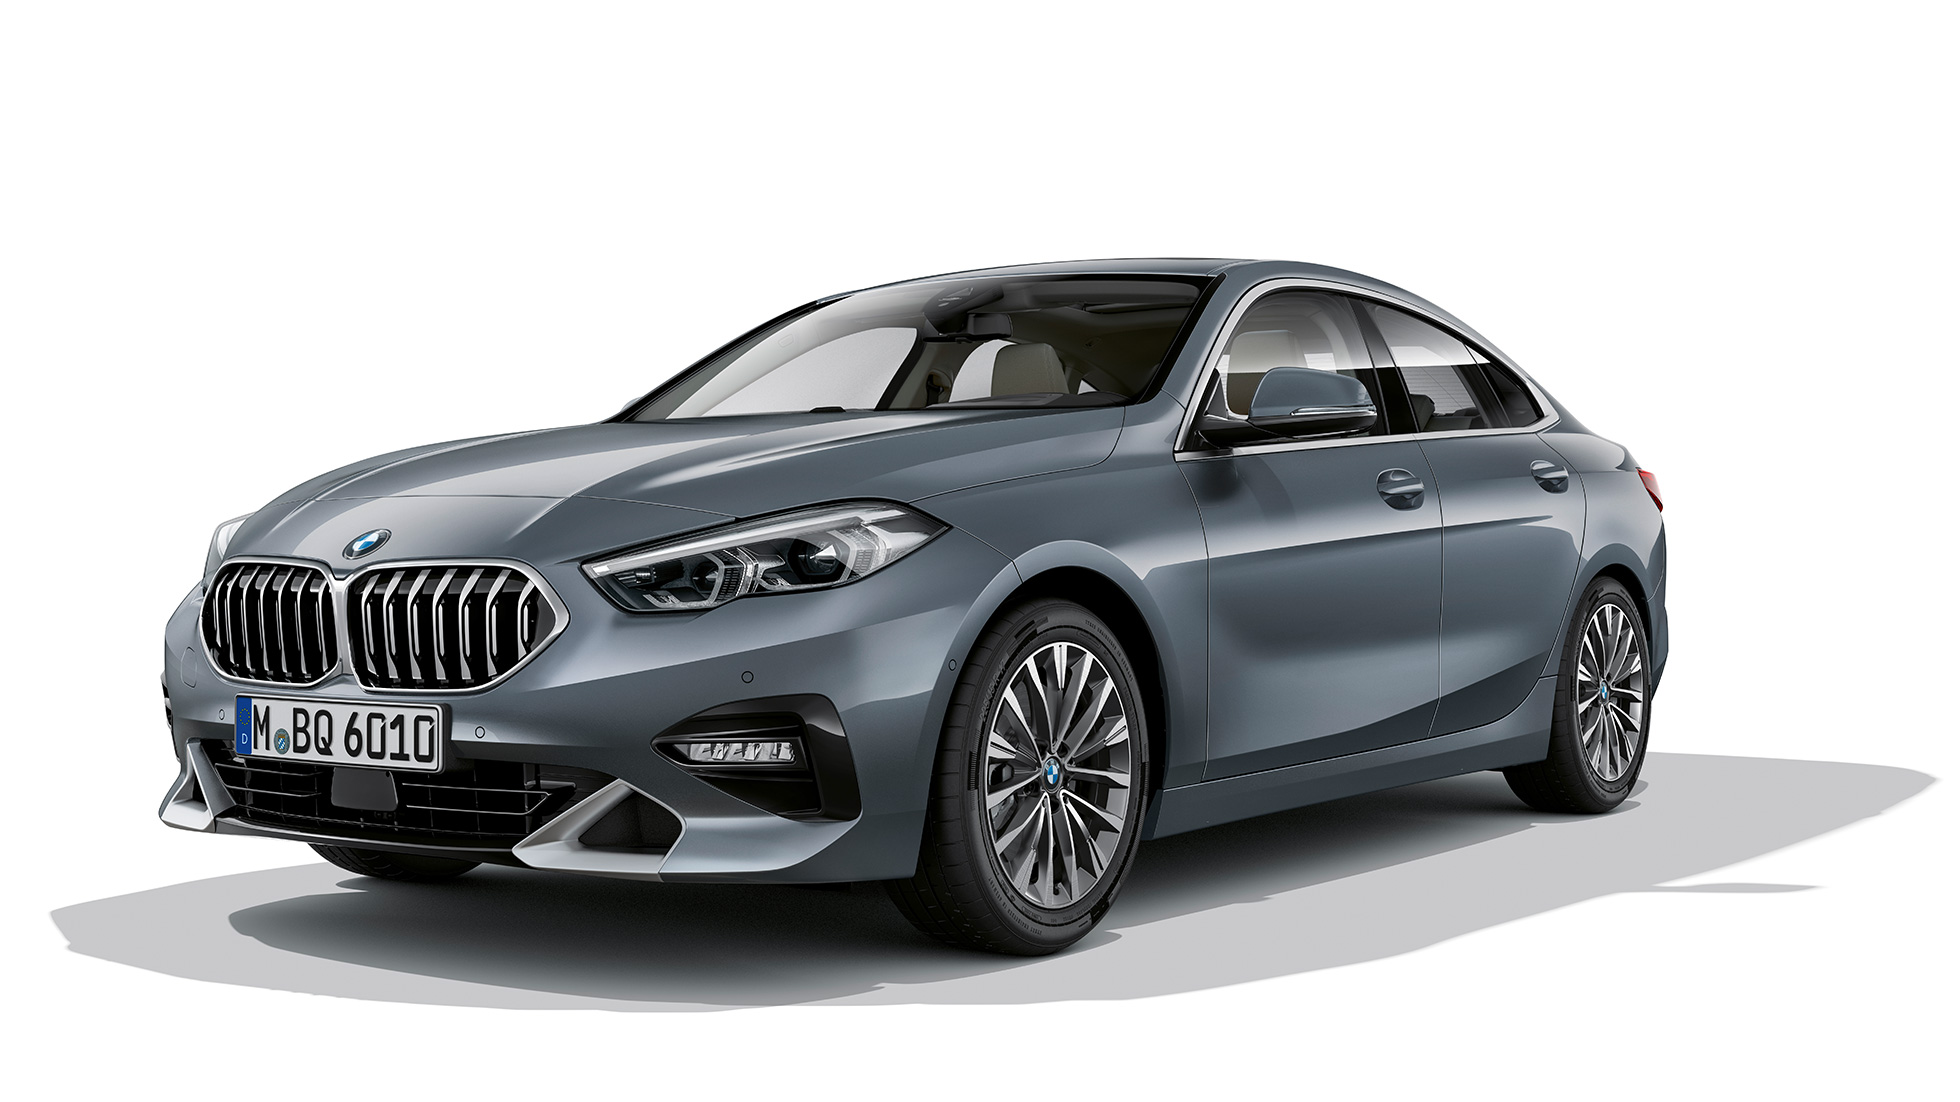 bmw-2-series-gran-coupe-lines-inform-ag-02-01